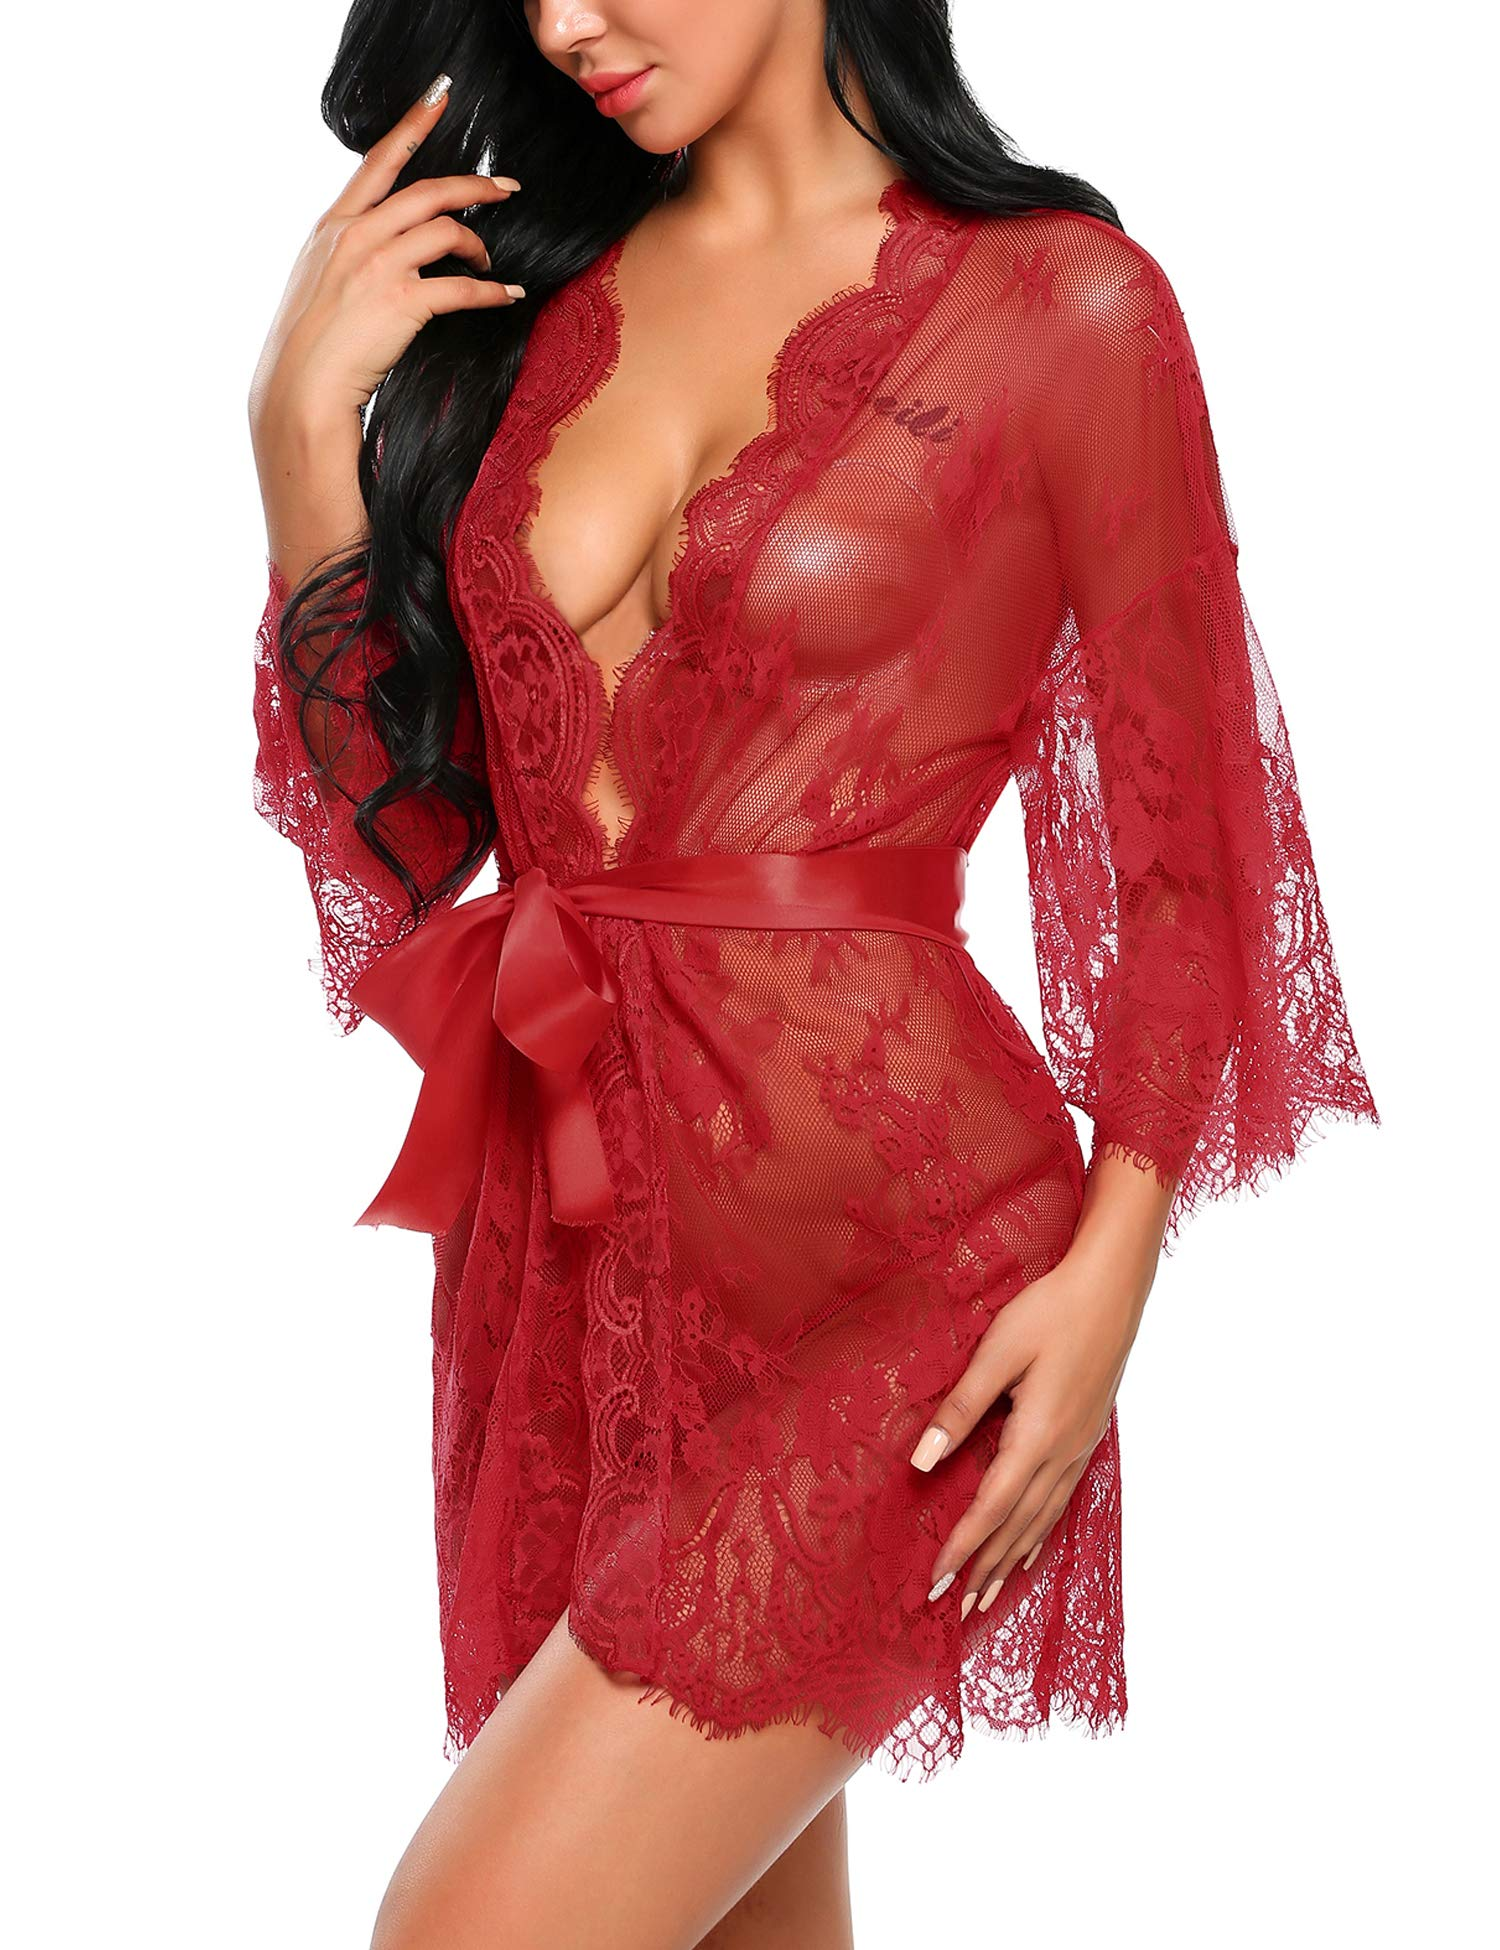 Avidlove Lingerie for Women Sexy Women's Lace Kimono Robe Babydoll Lingerie Mesh Nightgown Dark Red XL - wiihuu